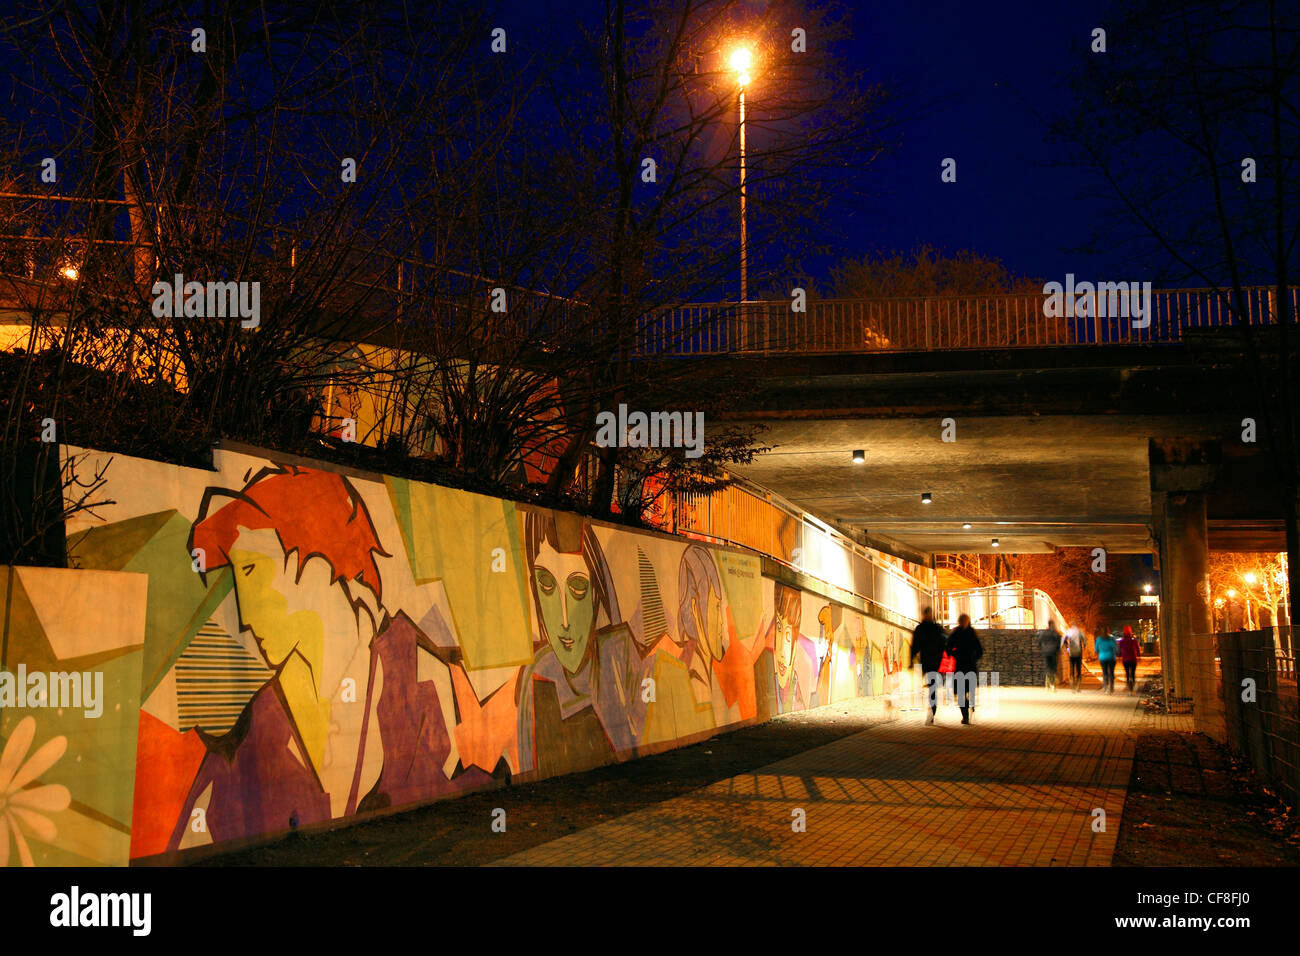 Public walk path, underneath a street bridge, with lots of graffiti, at night. Essen, Germany. - Stock Image